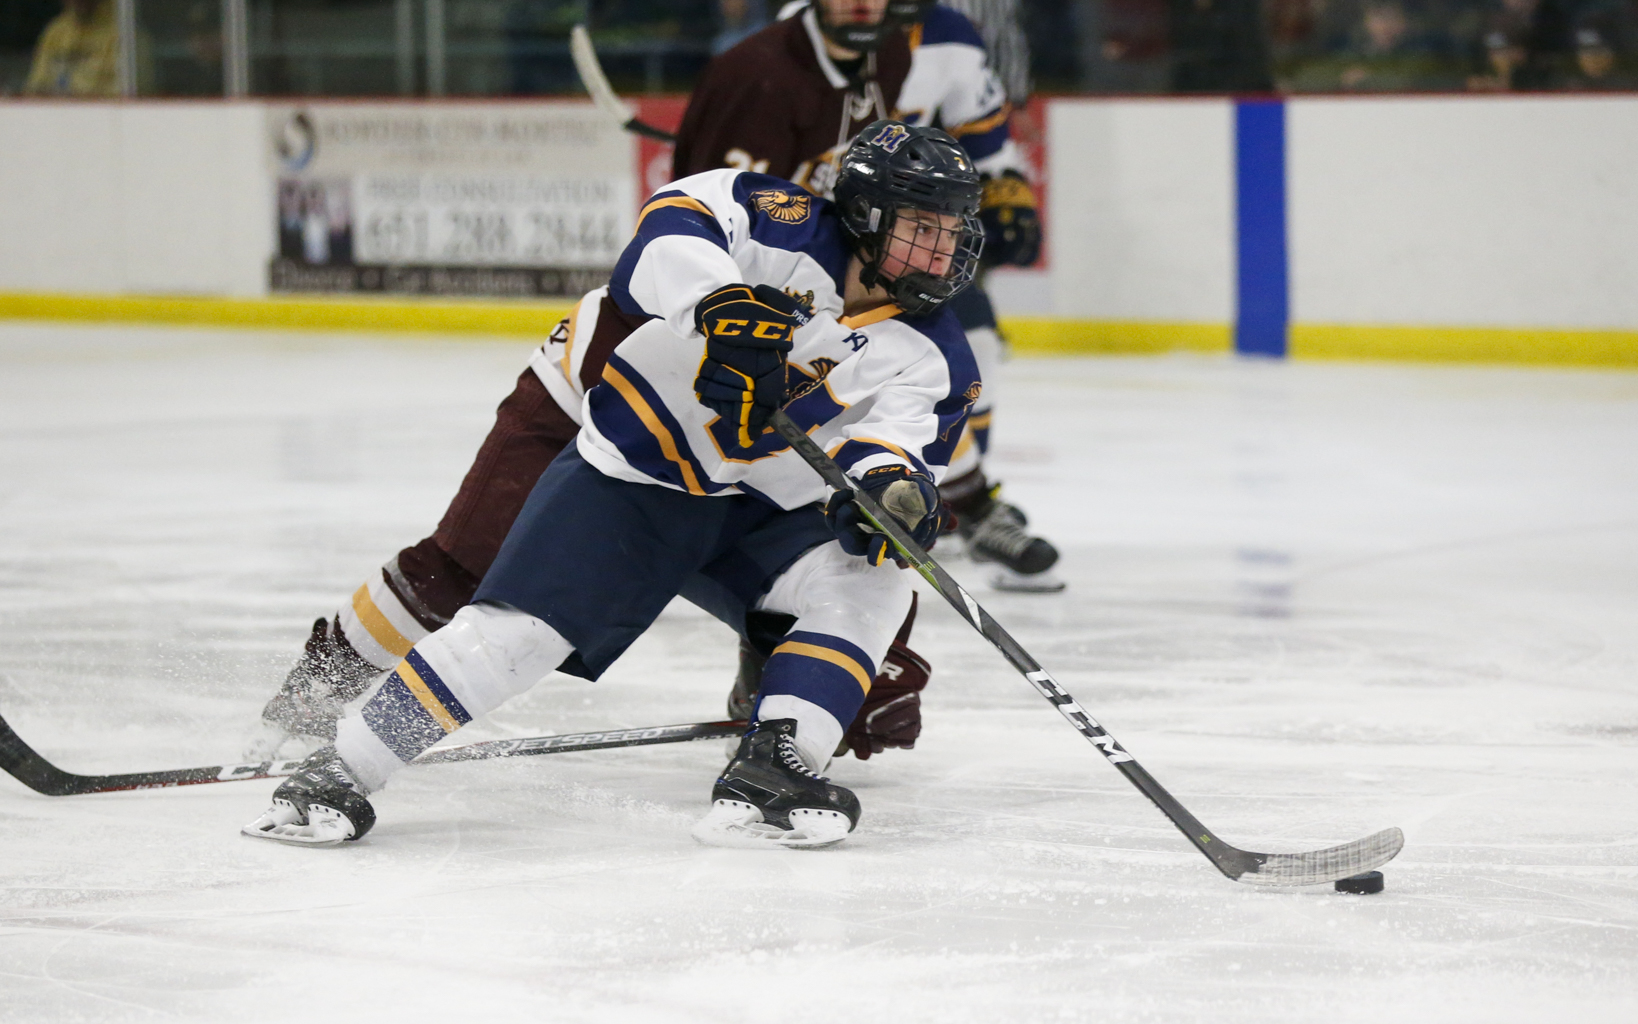 Mahtomedi's Grant Dardis (3) gets around a South St. Paul defender during Friday night's Class 1A, Section 4 final. The Zephyrs defeated the Packers 5-1 to advance to next week's state tournament. Photo by Jeff Lawler, SportsEngine